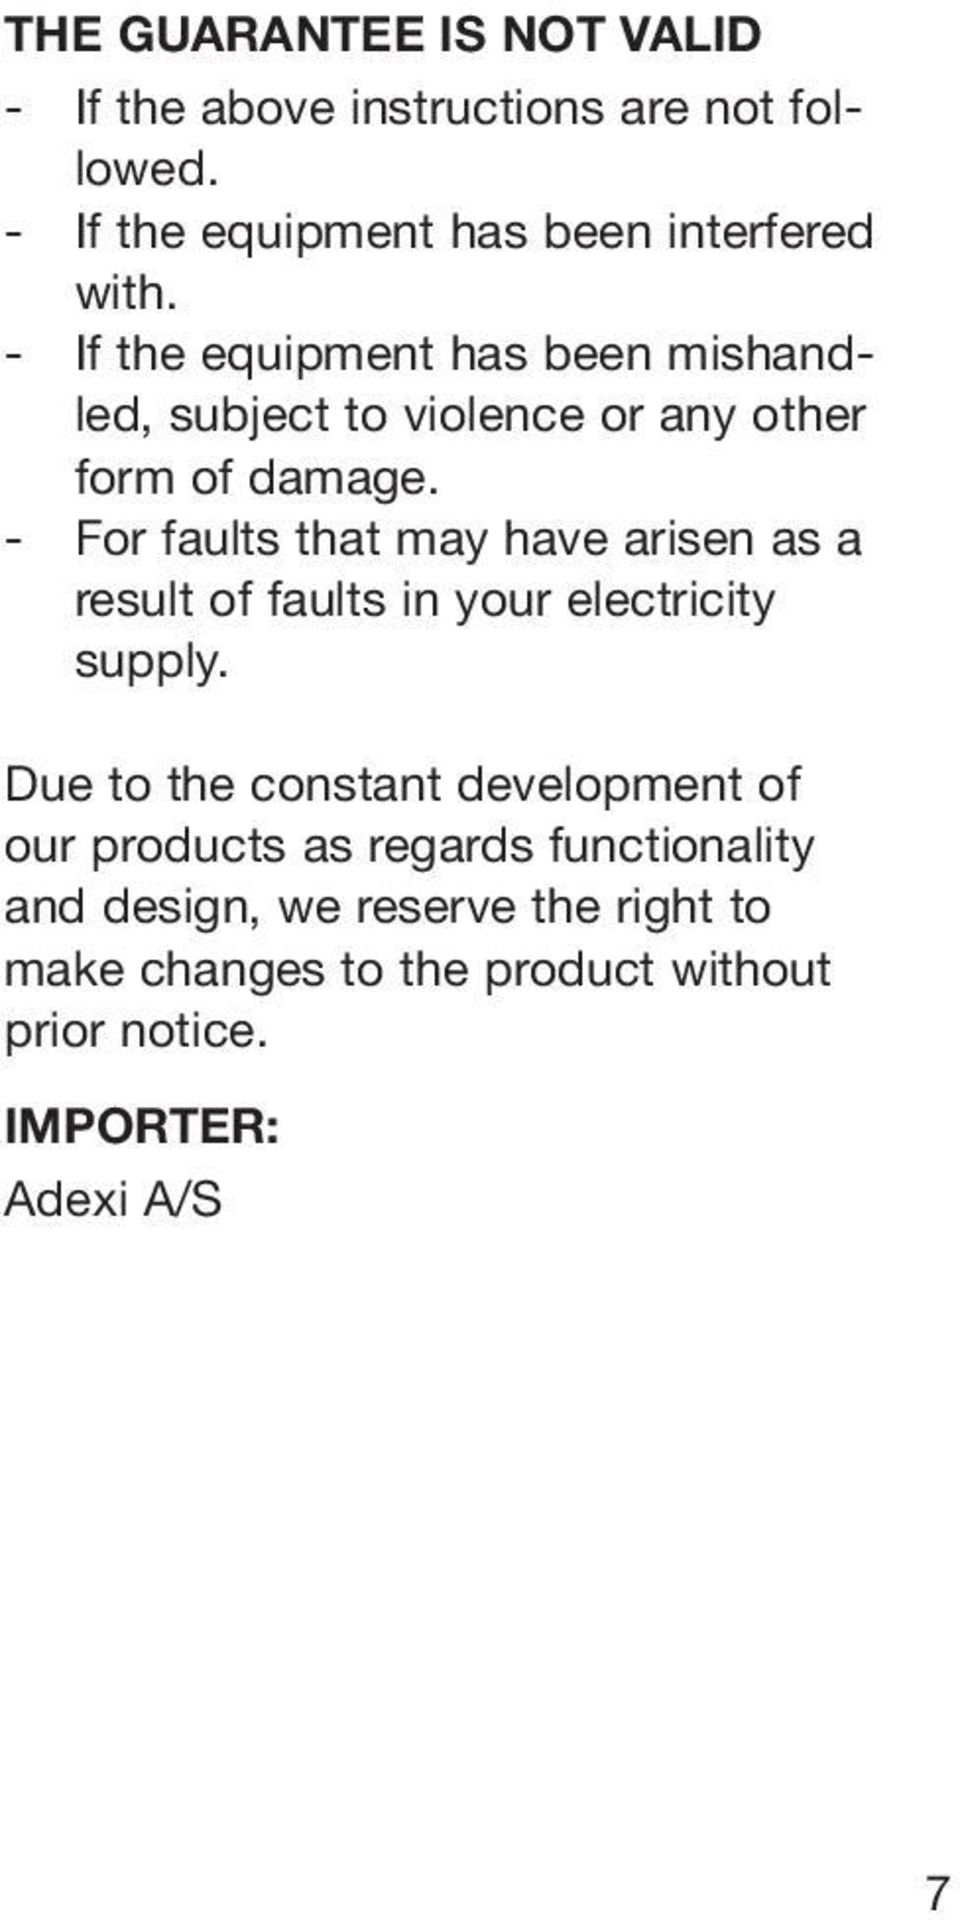 - For faults that may have arisen as a result of faults in your electricity supply.